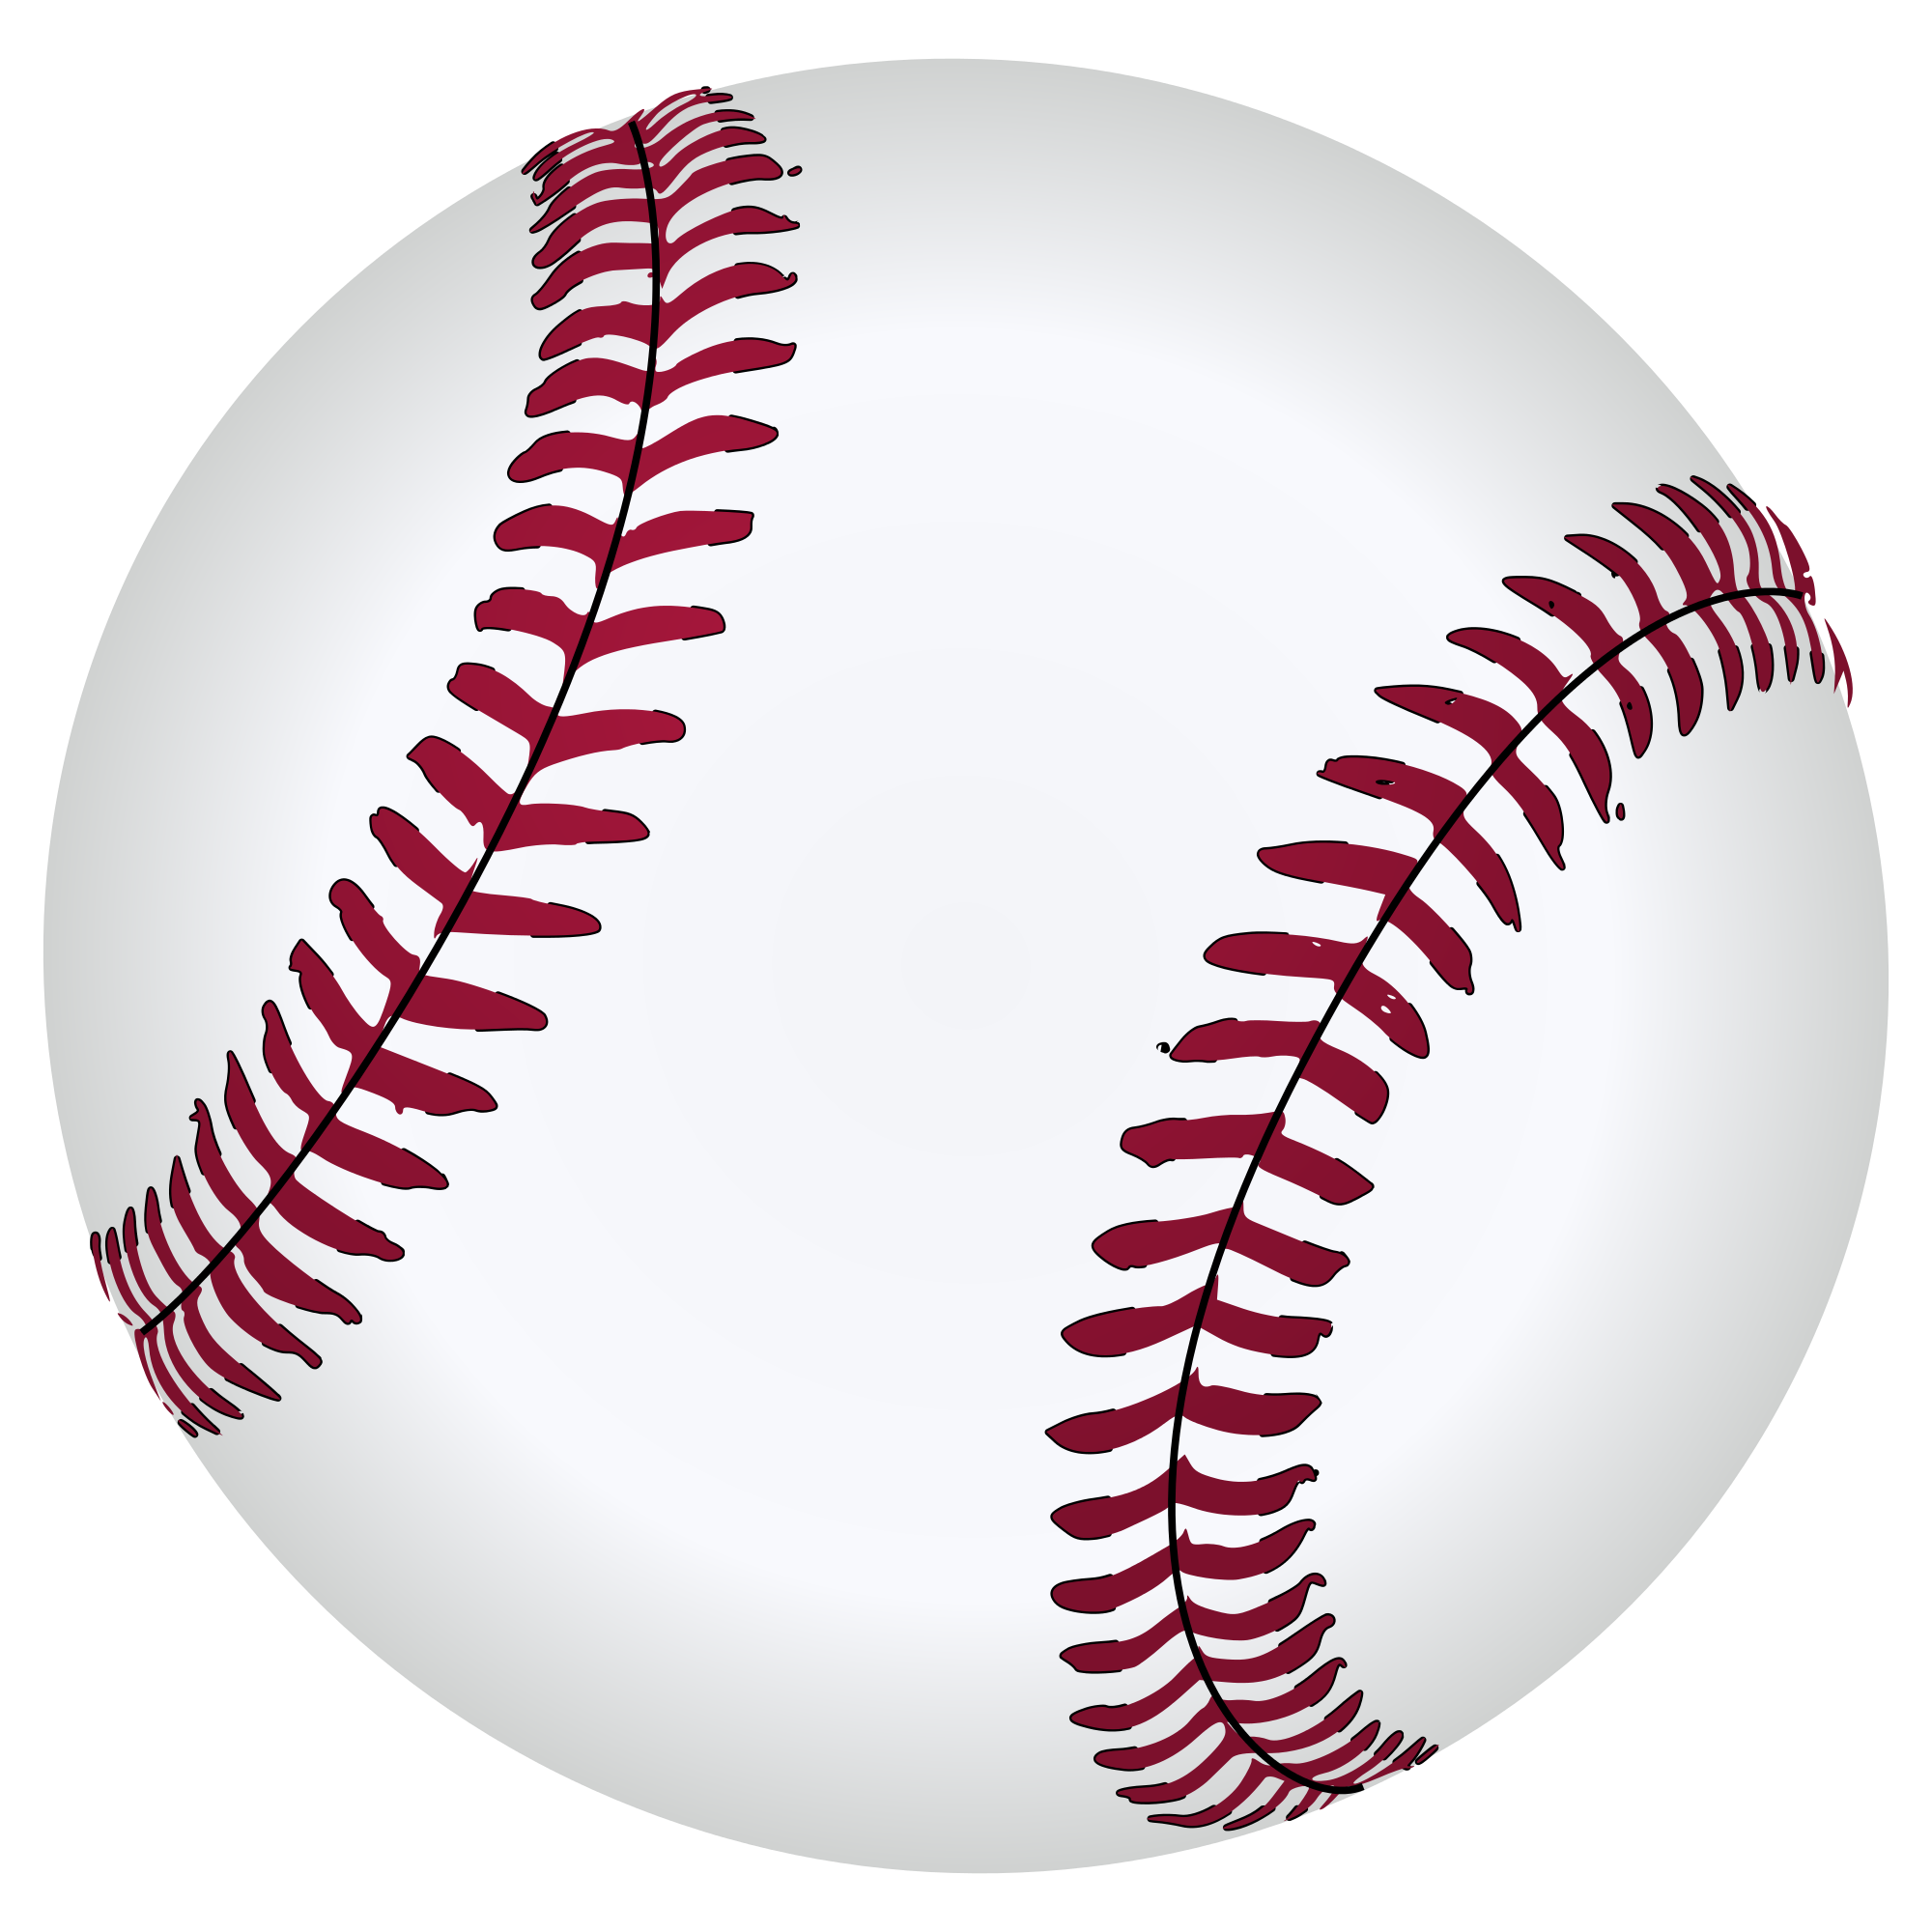 Angry baseball clipart png free download Baseball Ball Drawing at GetDrawings.com | Free for personal use ... png free download